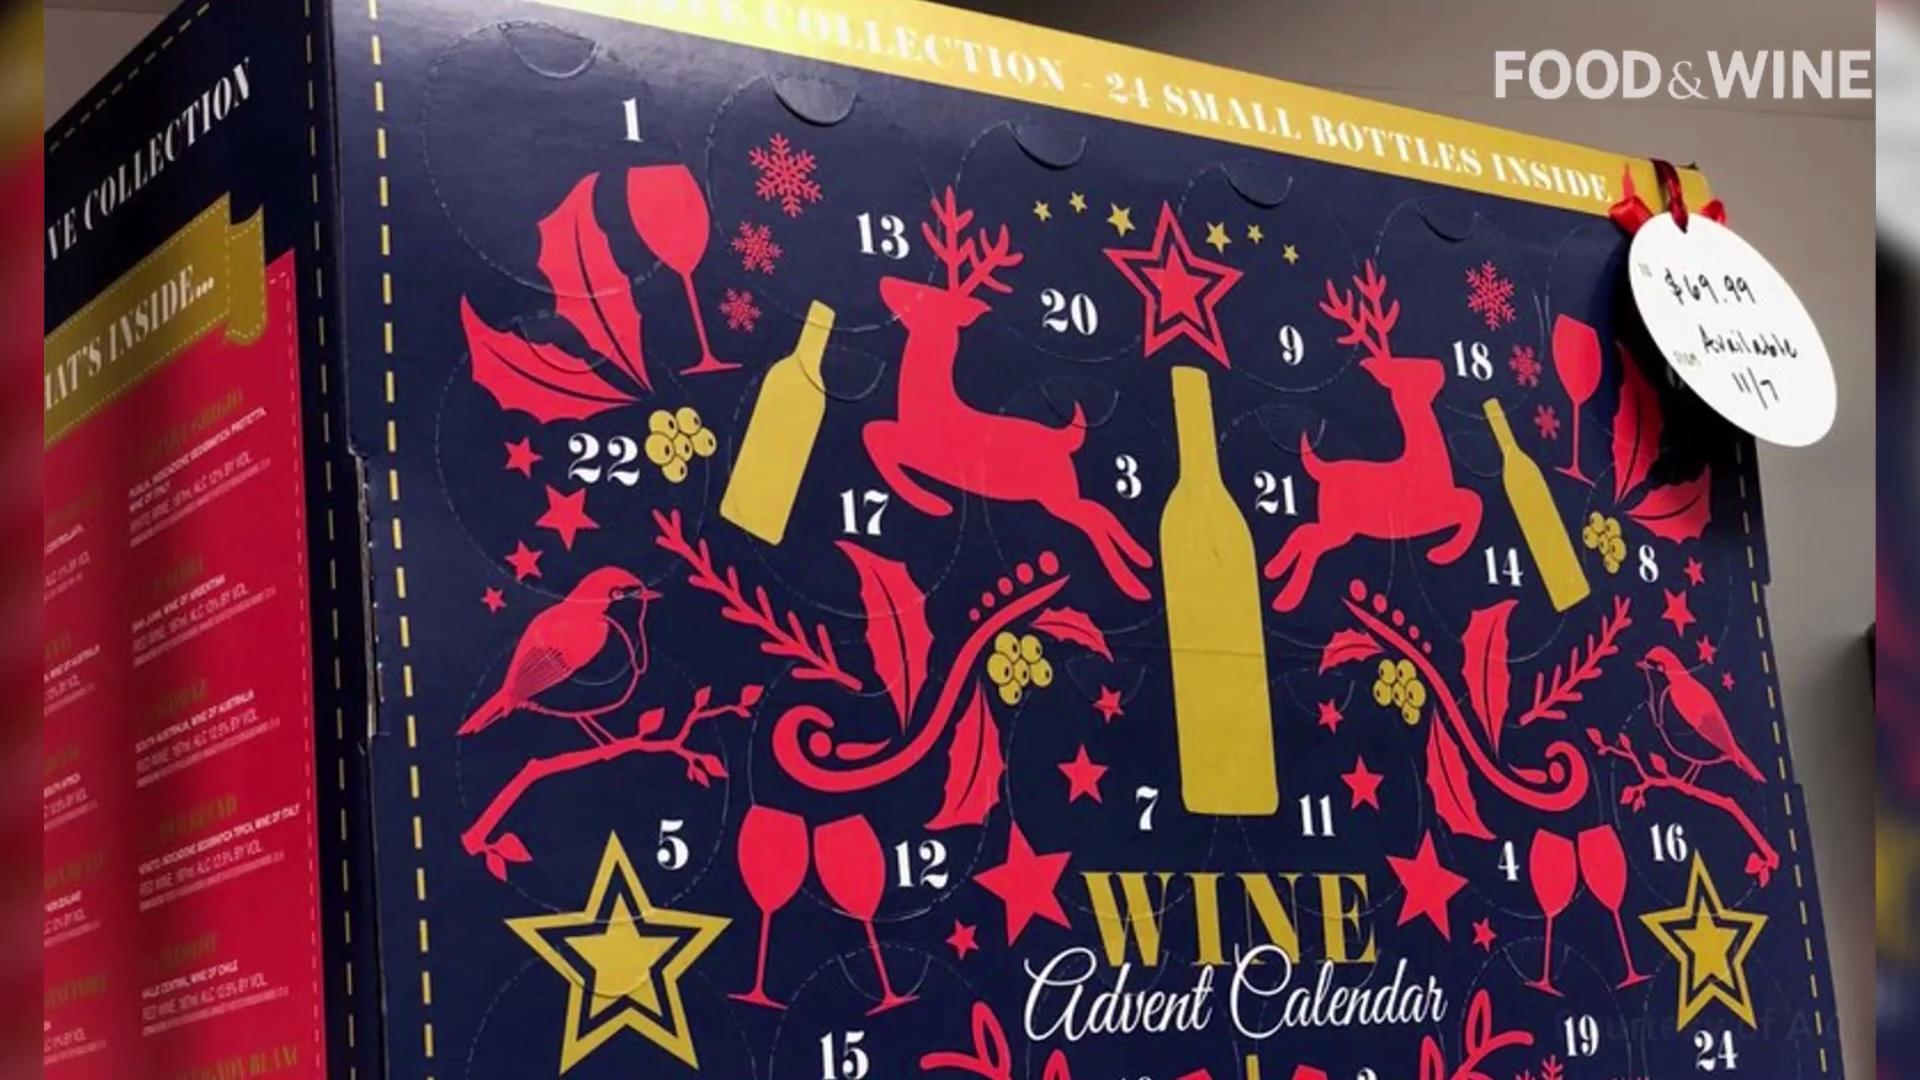 Aldi's wine advent calendar is finally coming to the U.S.